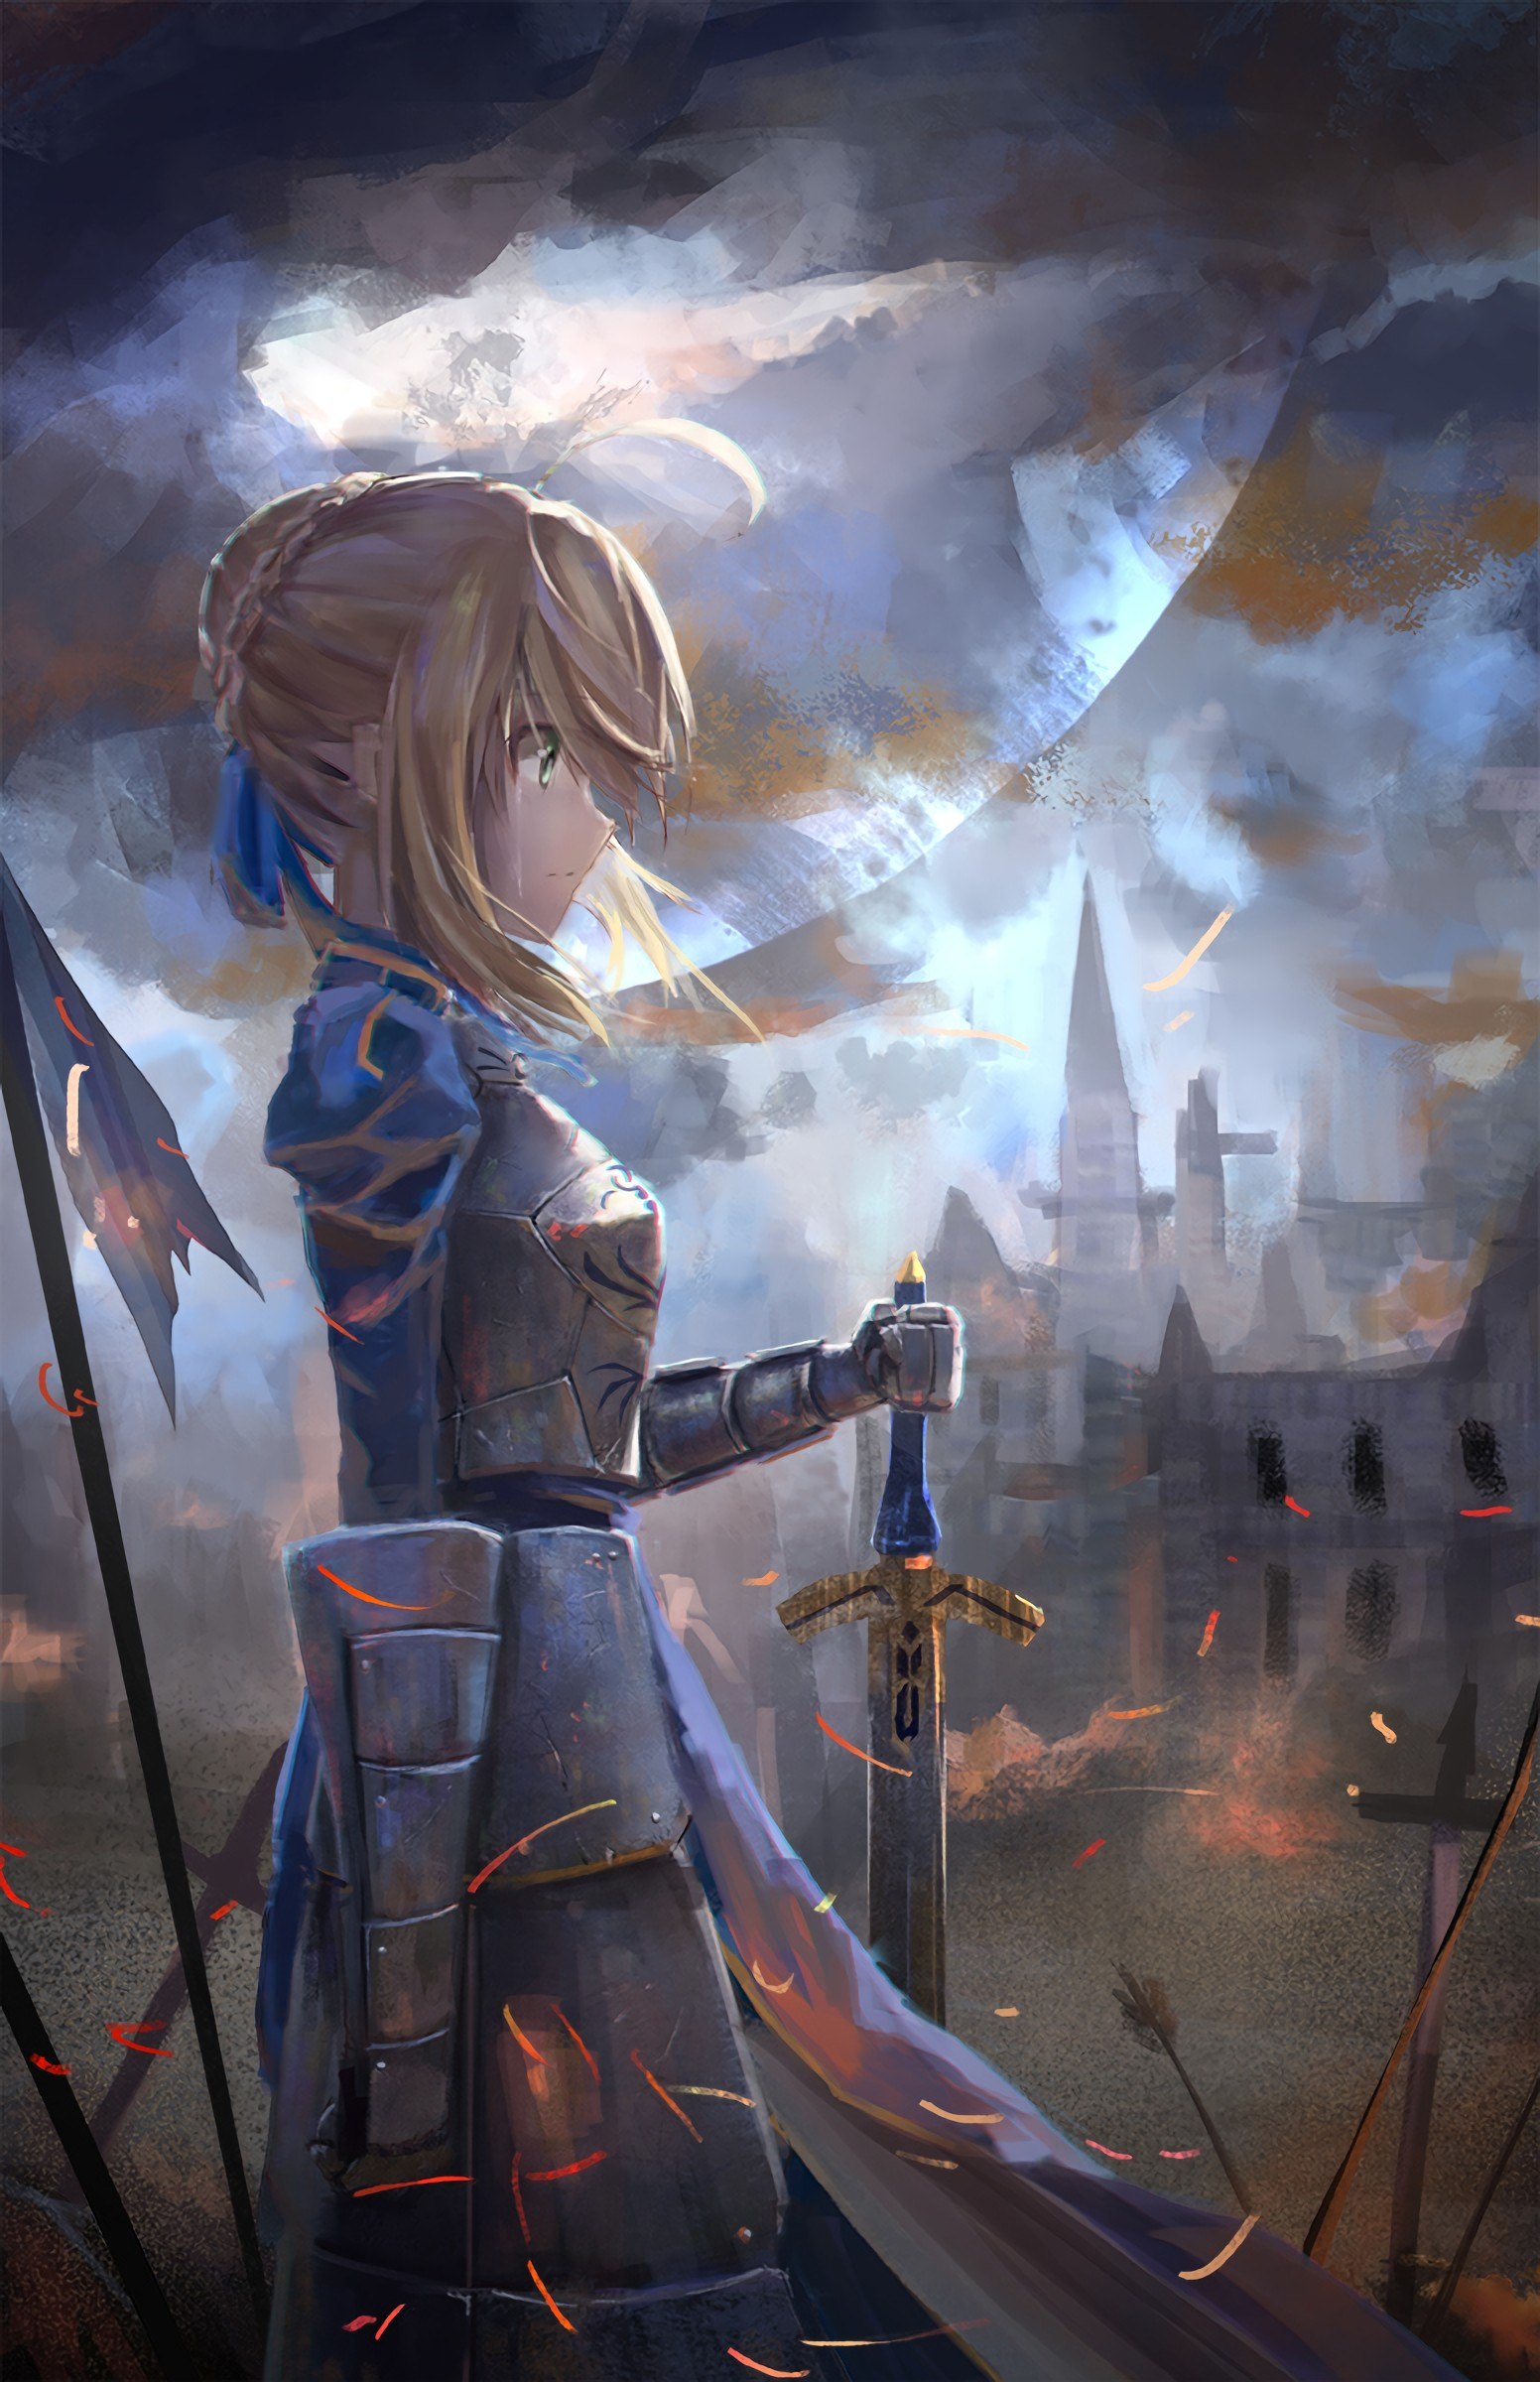 short hair, Blonde, Anime, Anime girls, Fate Zero, Fate Stay Night, Saber, Armor, Sword, Weapon, Moon Wallpaper